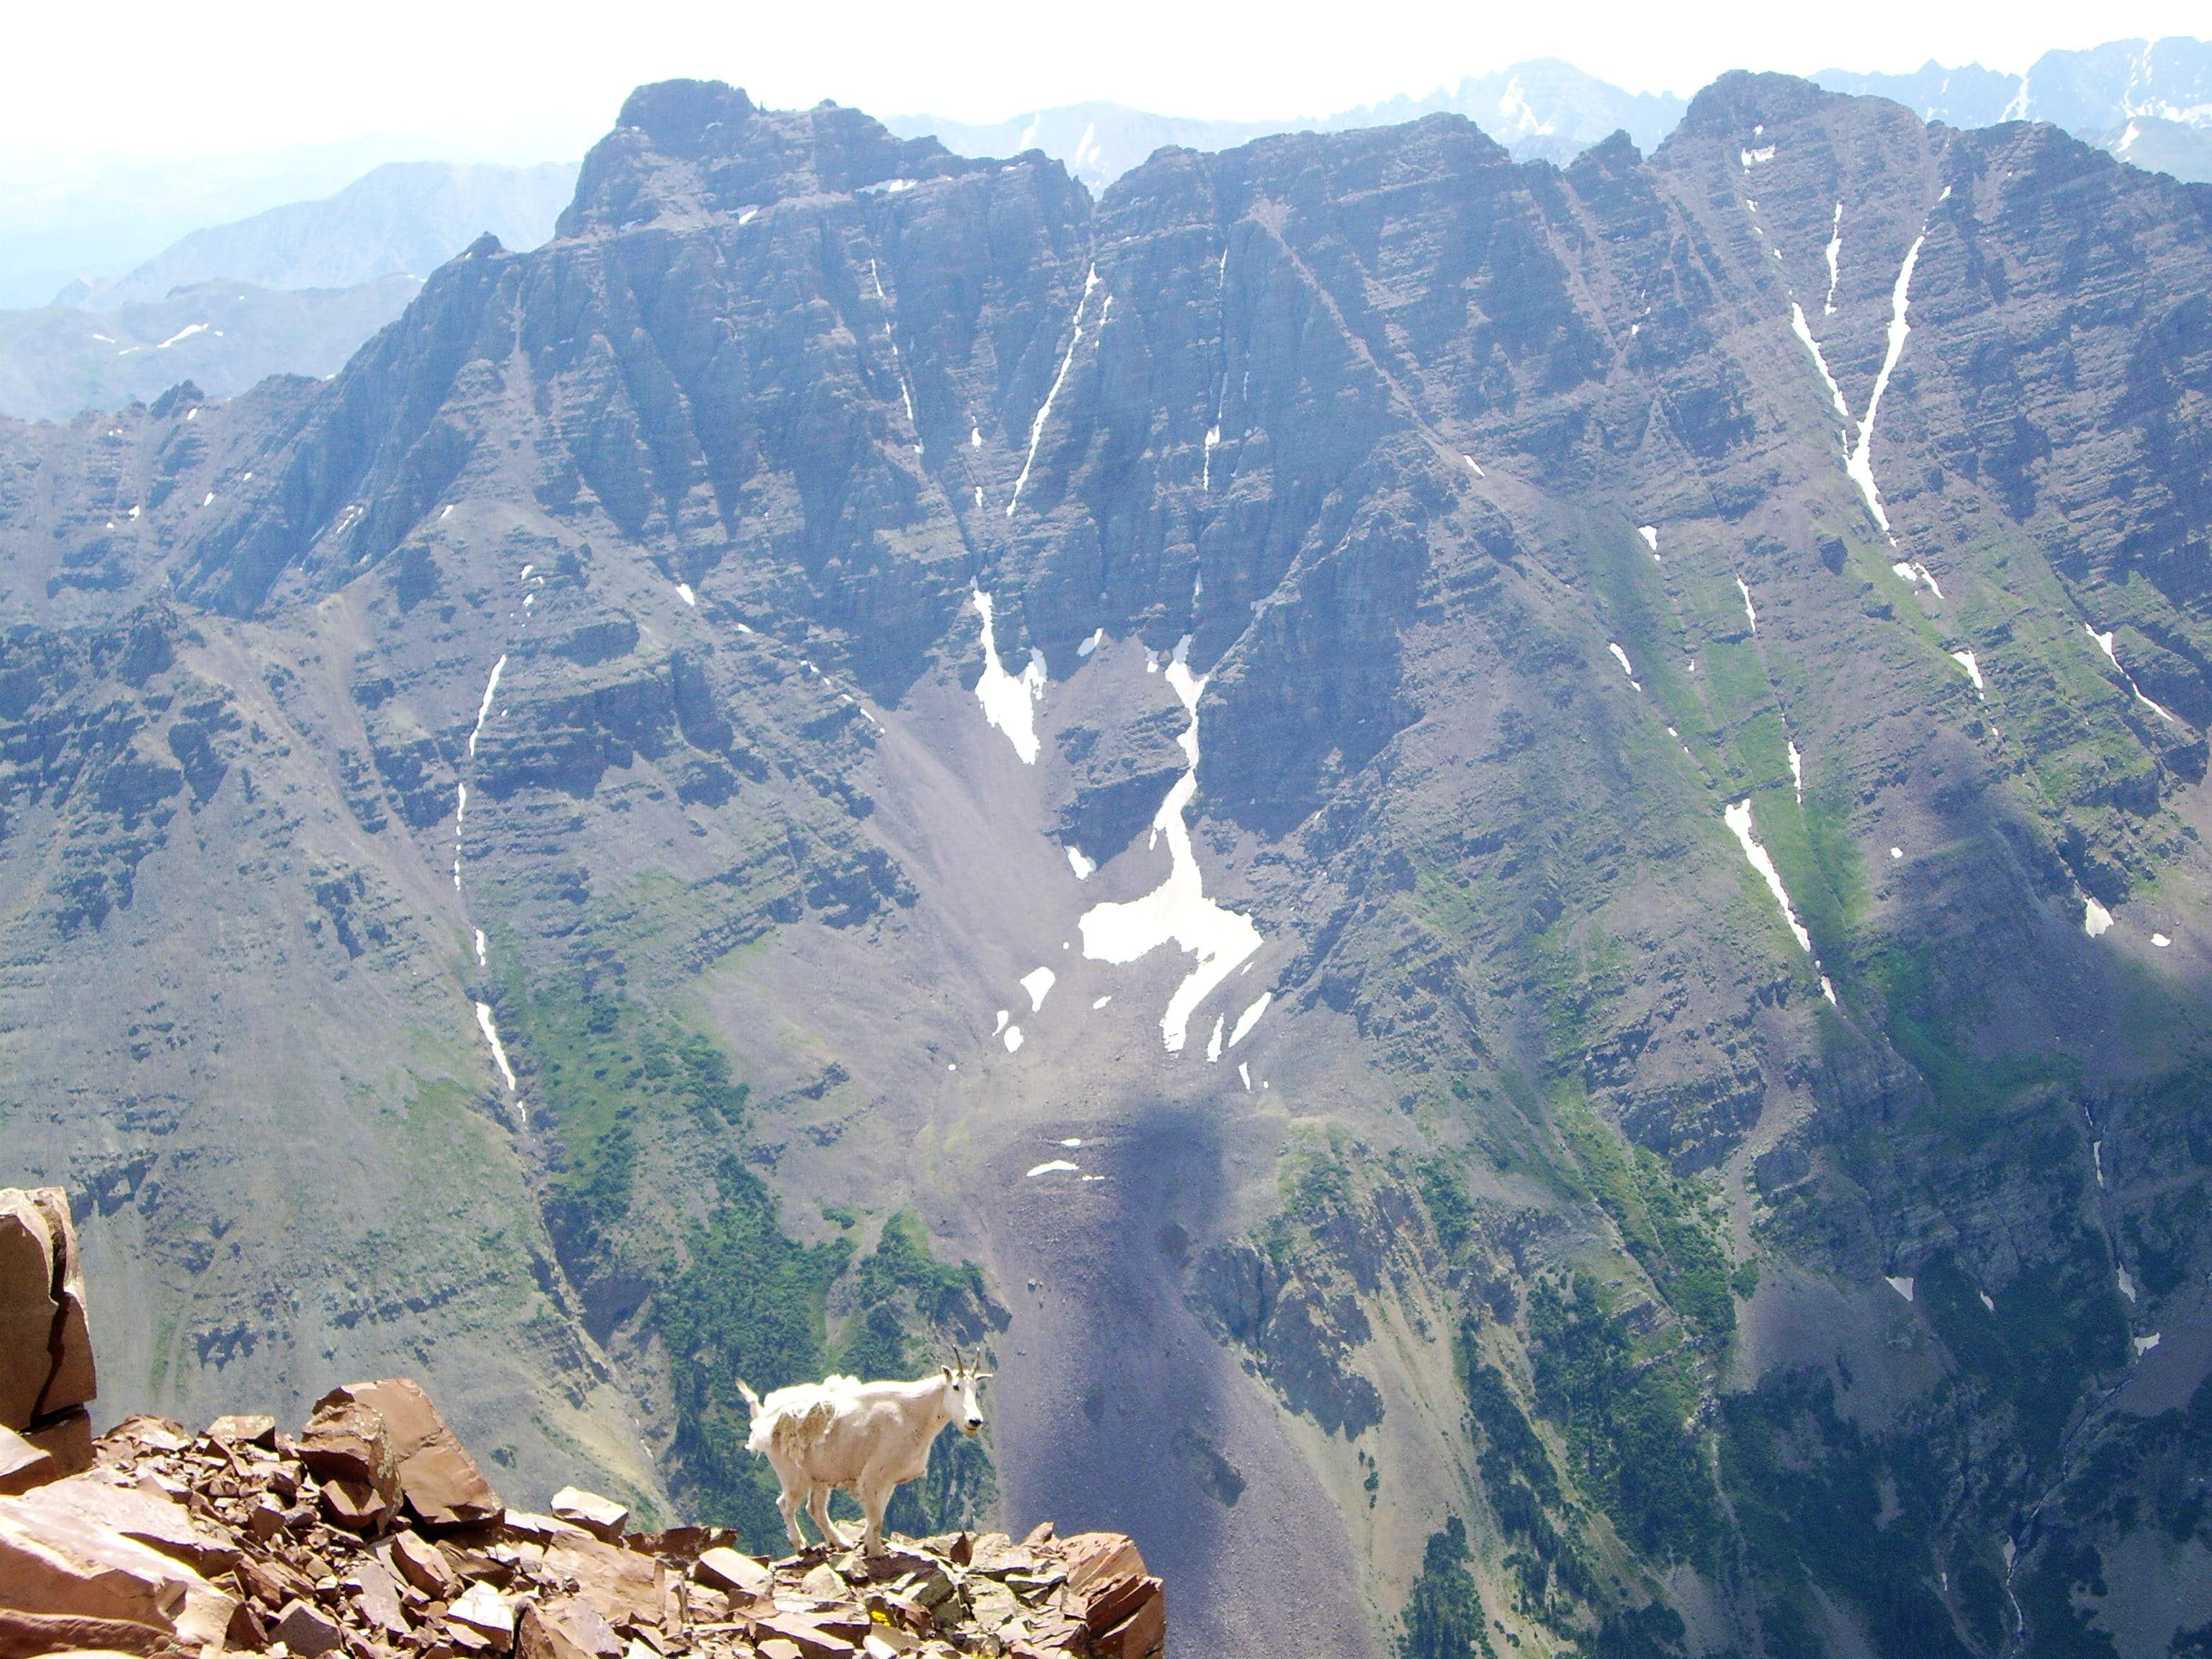 Northeast Ridge Route, 7-14-2007